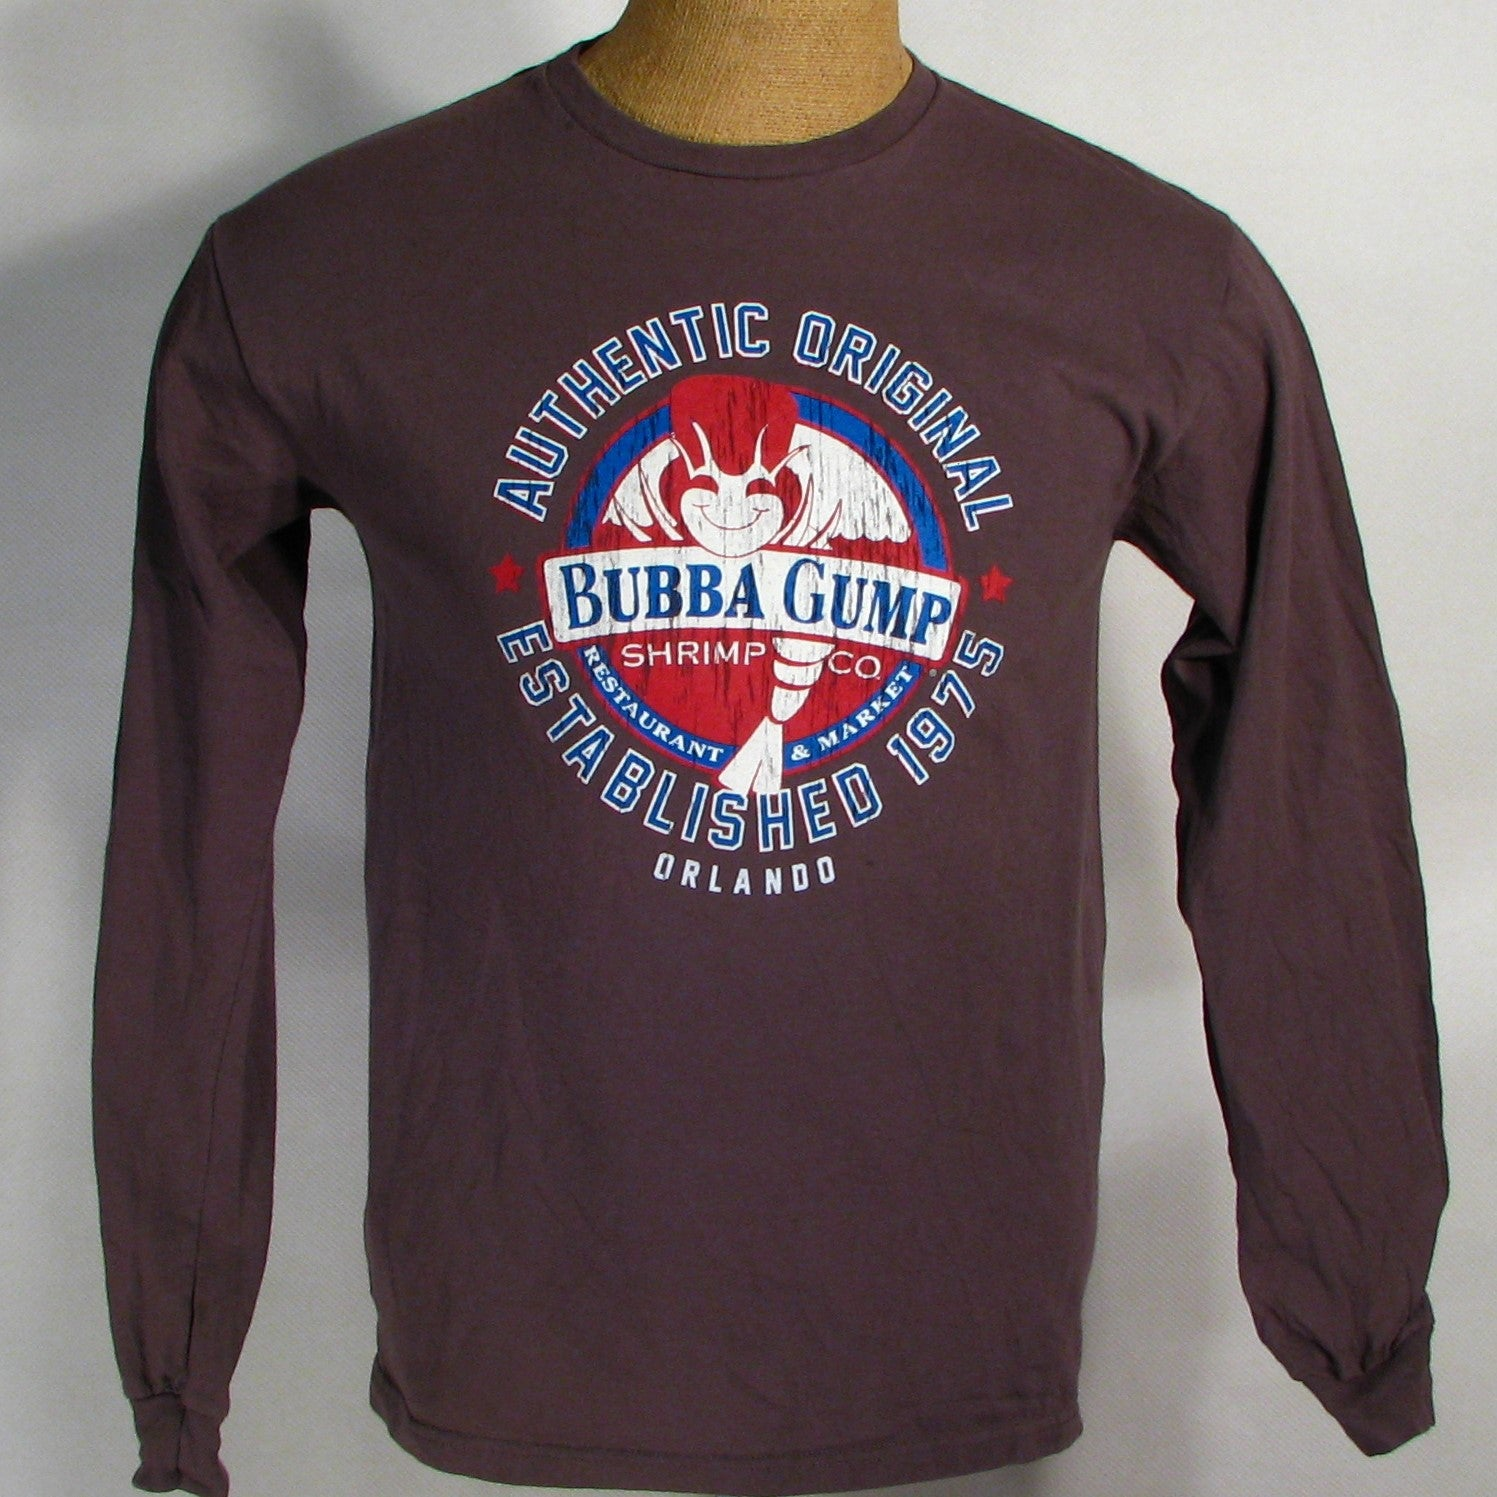 Bubba Gump Shrimp Company Long Sleeve T-Shirt